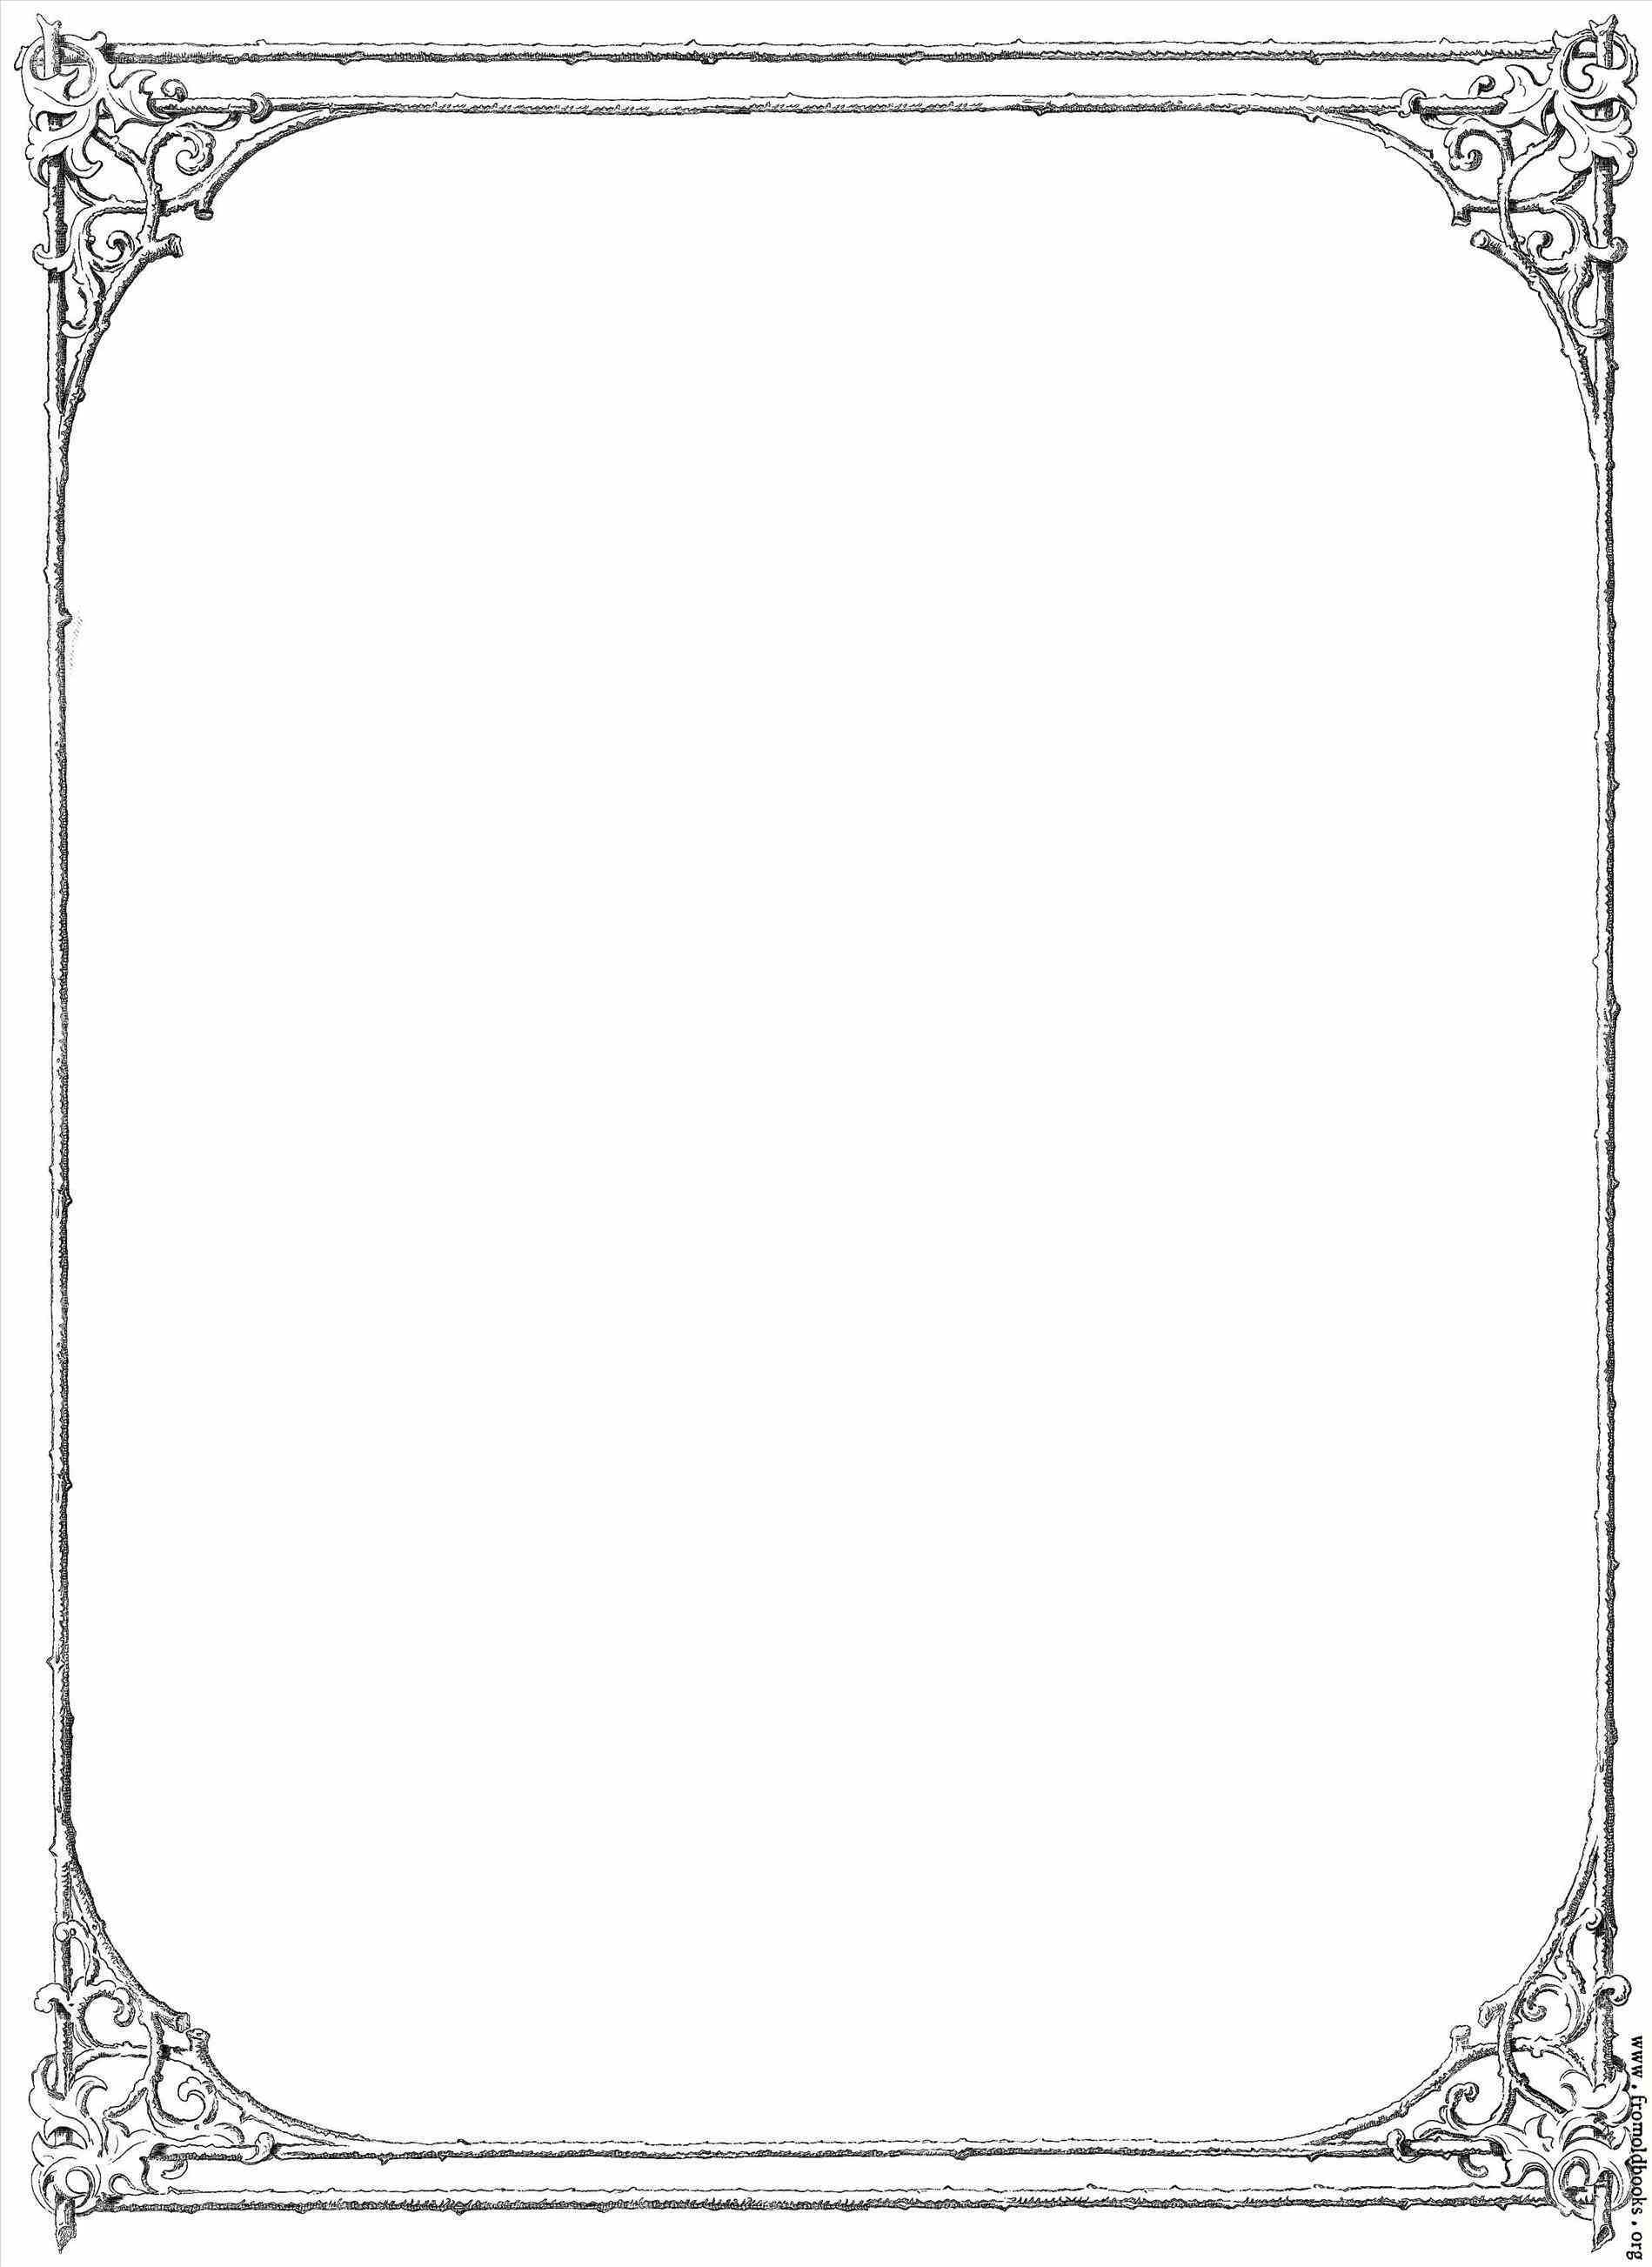 Frame clipart victorian. Border of twigs and